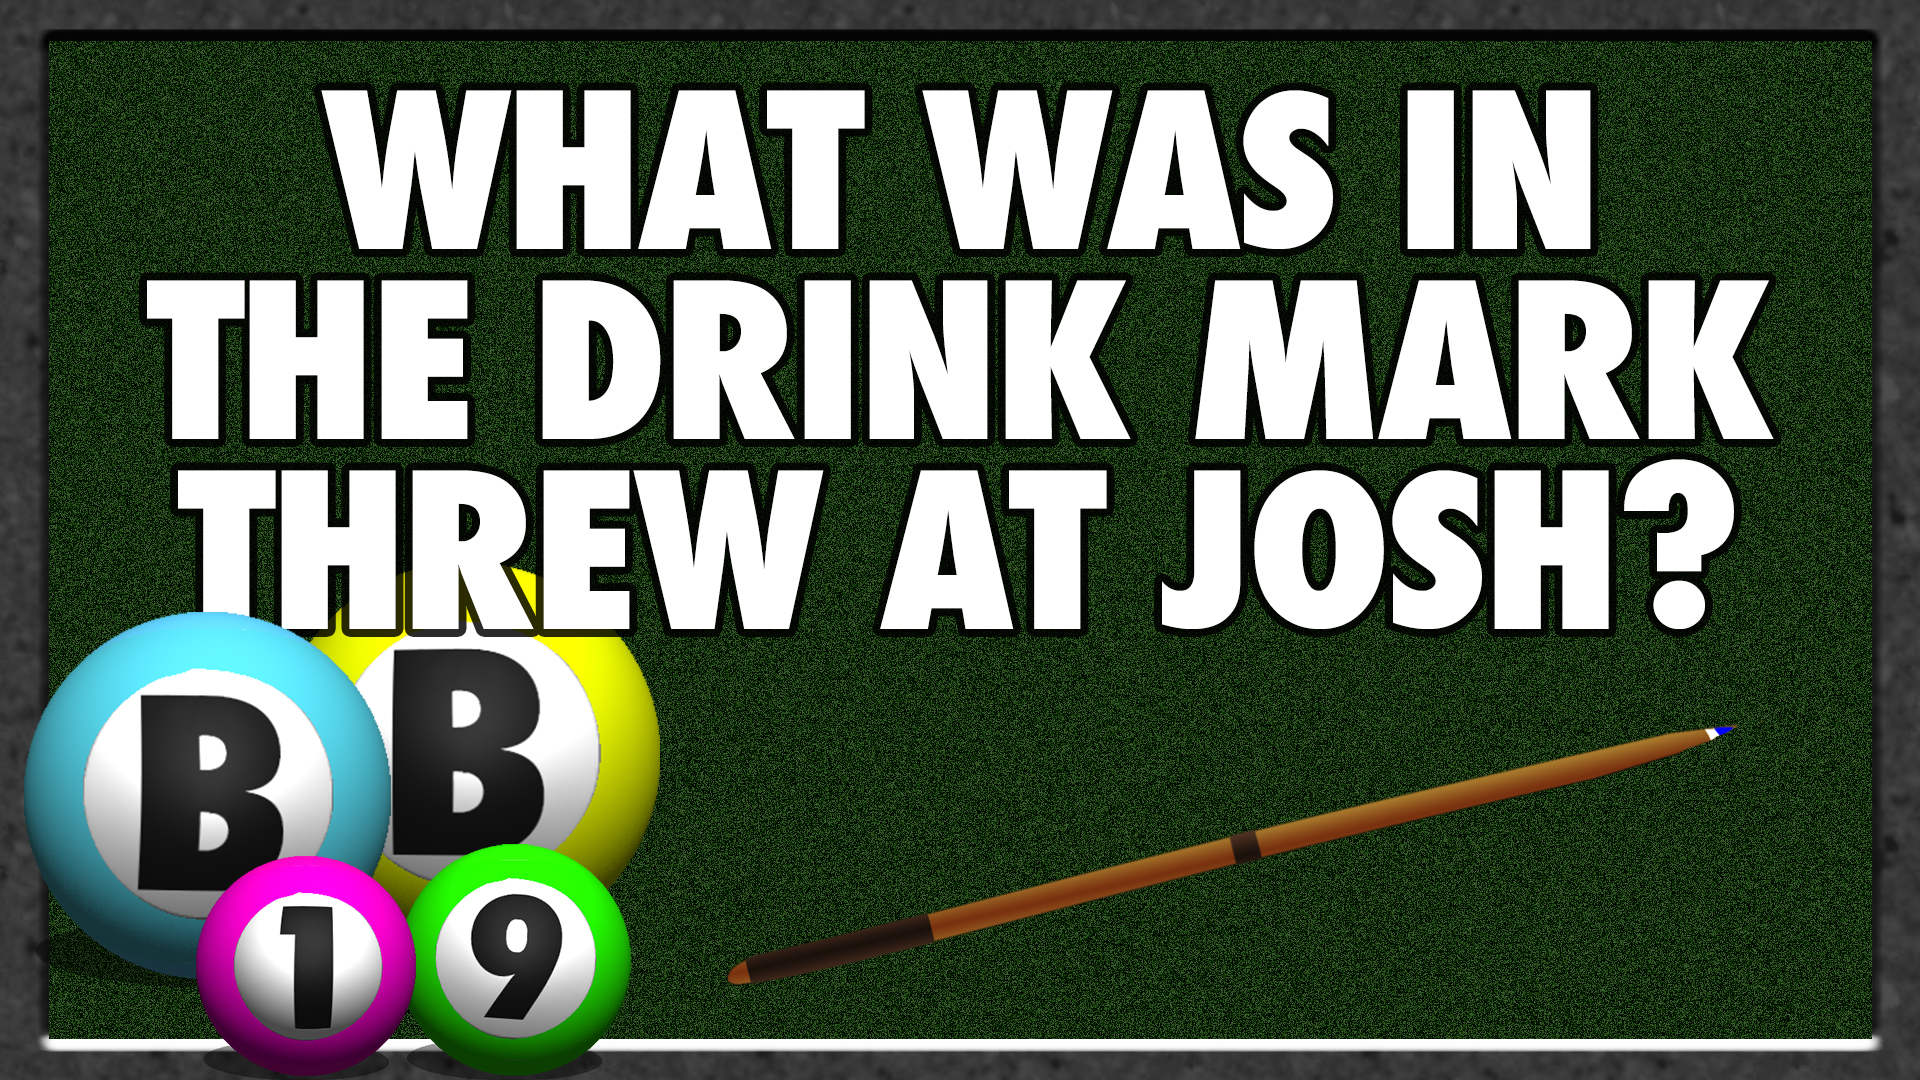 What was in the drink Mark threw at Josh?